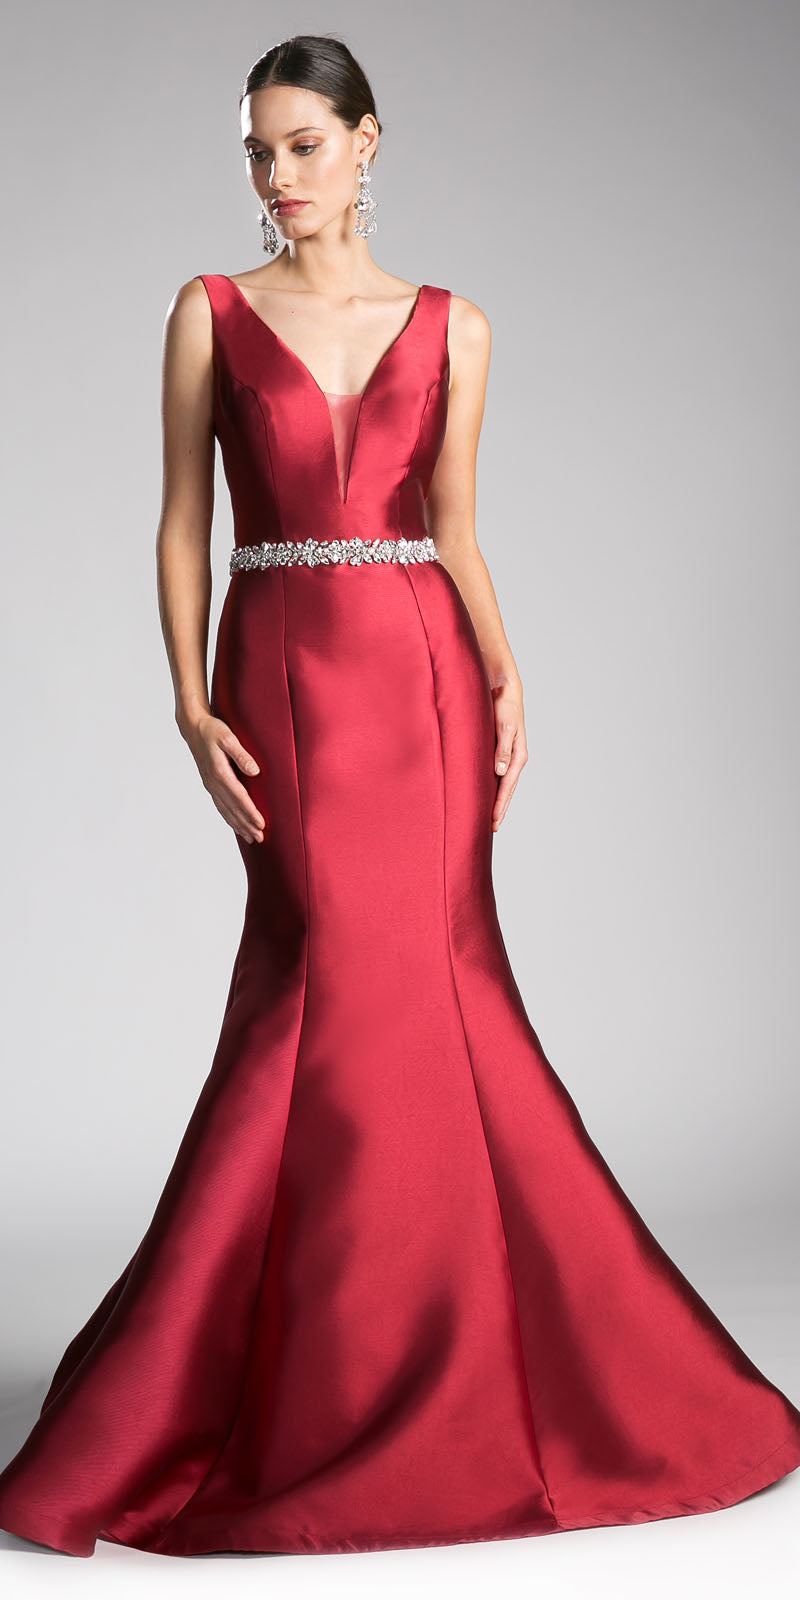 Cinderella Divine CR807 Burgundy Mermaid Evening Gown with ...